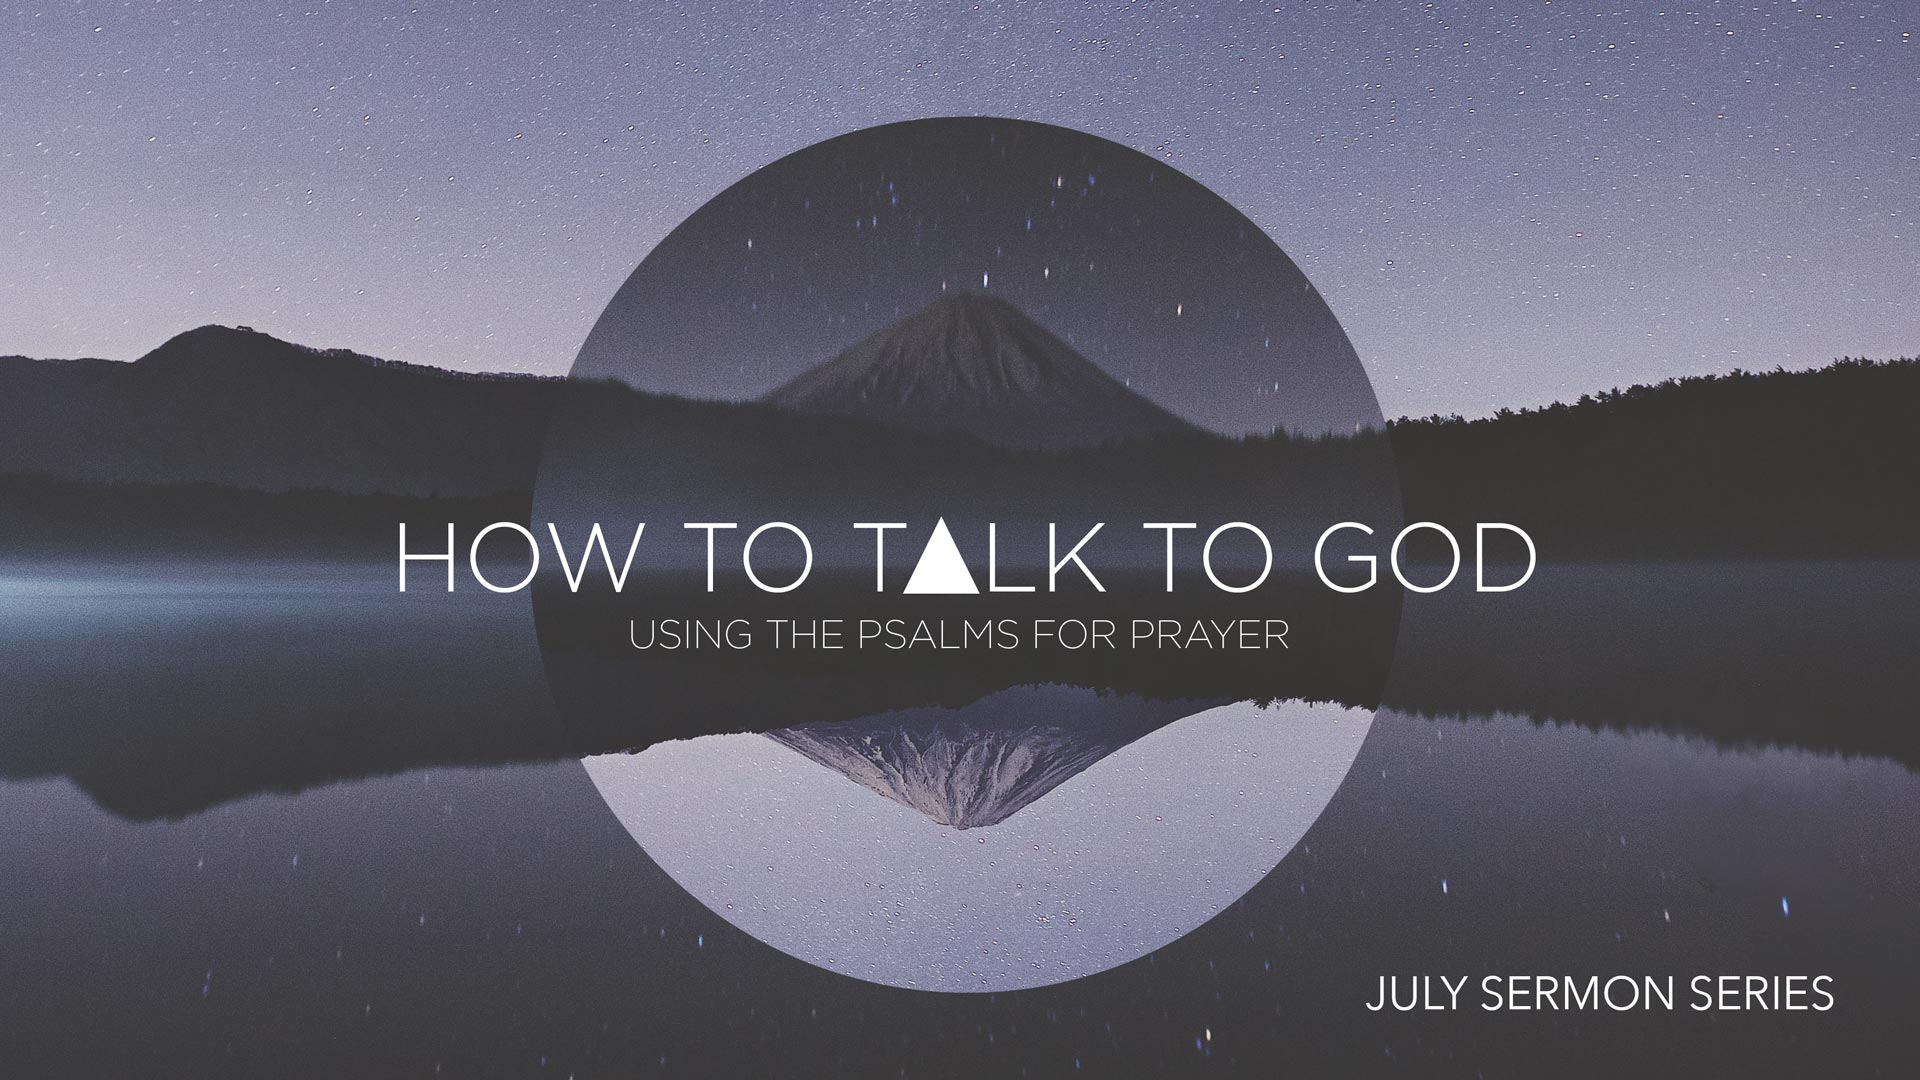 How to Talk to God - Using the Psalms for Prayer - Sermon Series - Grace Community Church